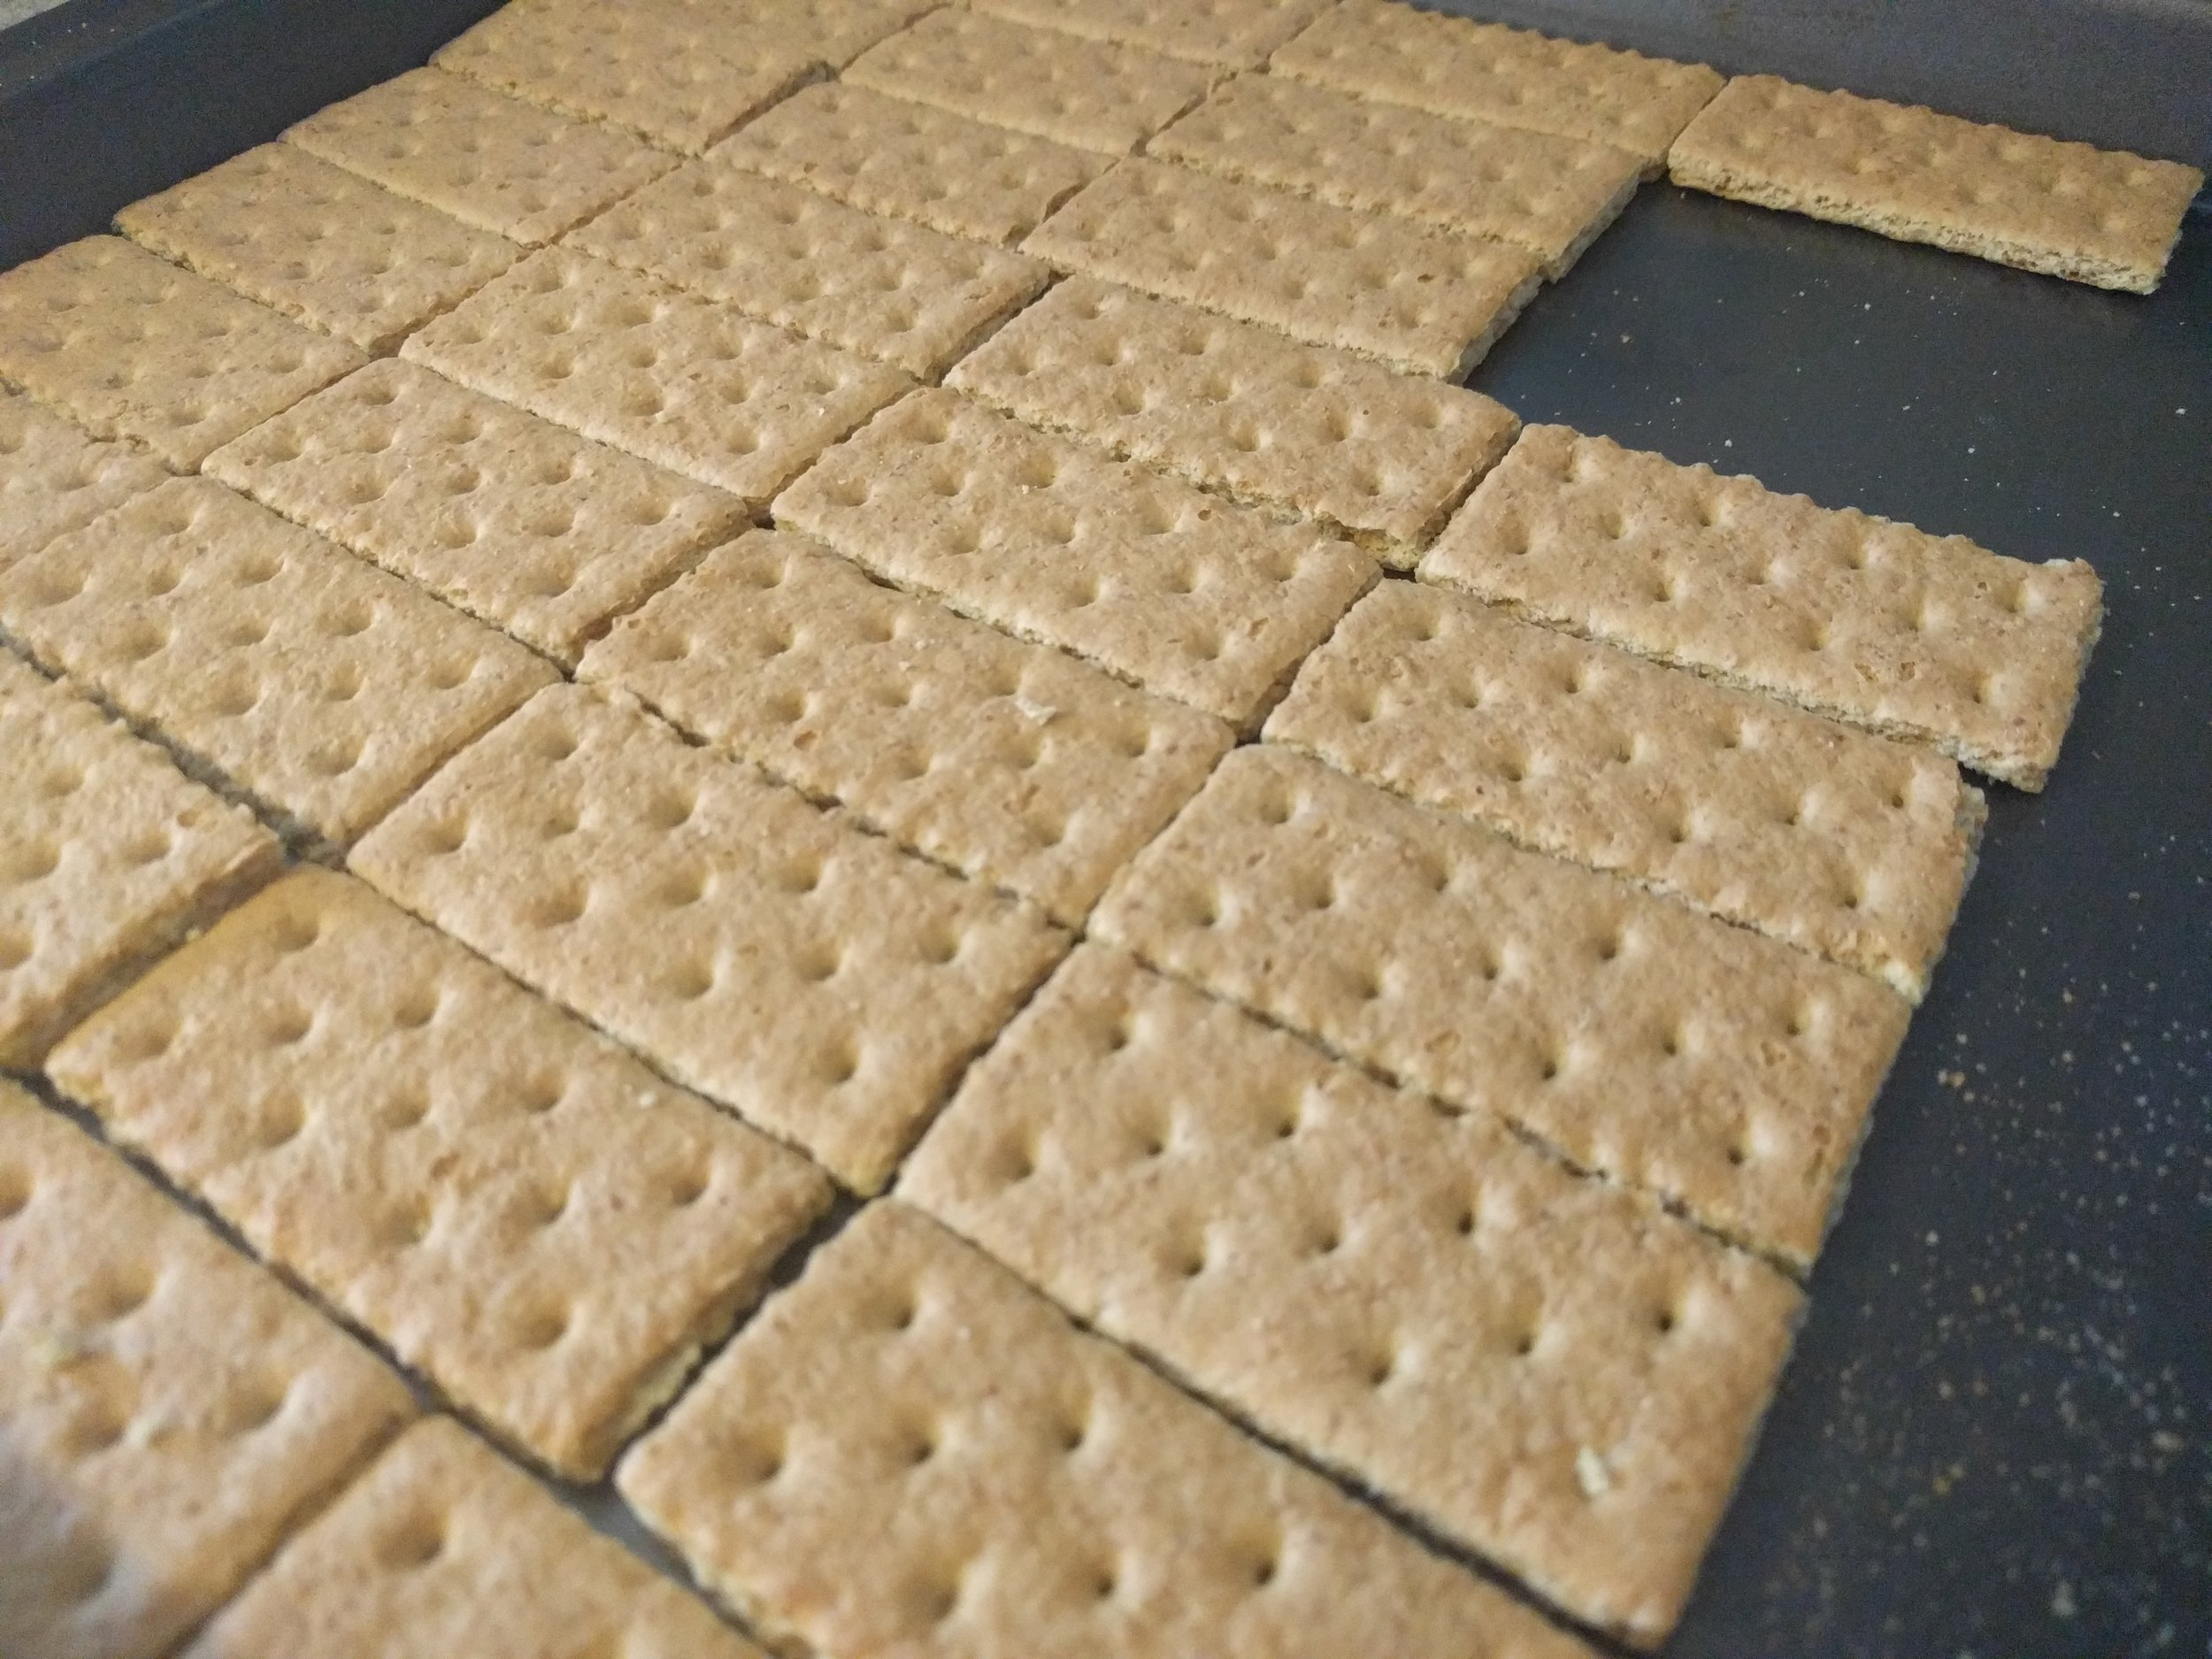 I had forgotten how good graham crackers are on their own! Had a few and felt like I was back in Sunday school.